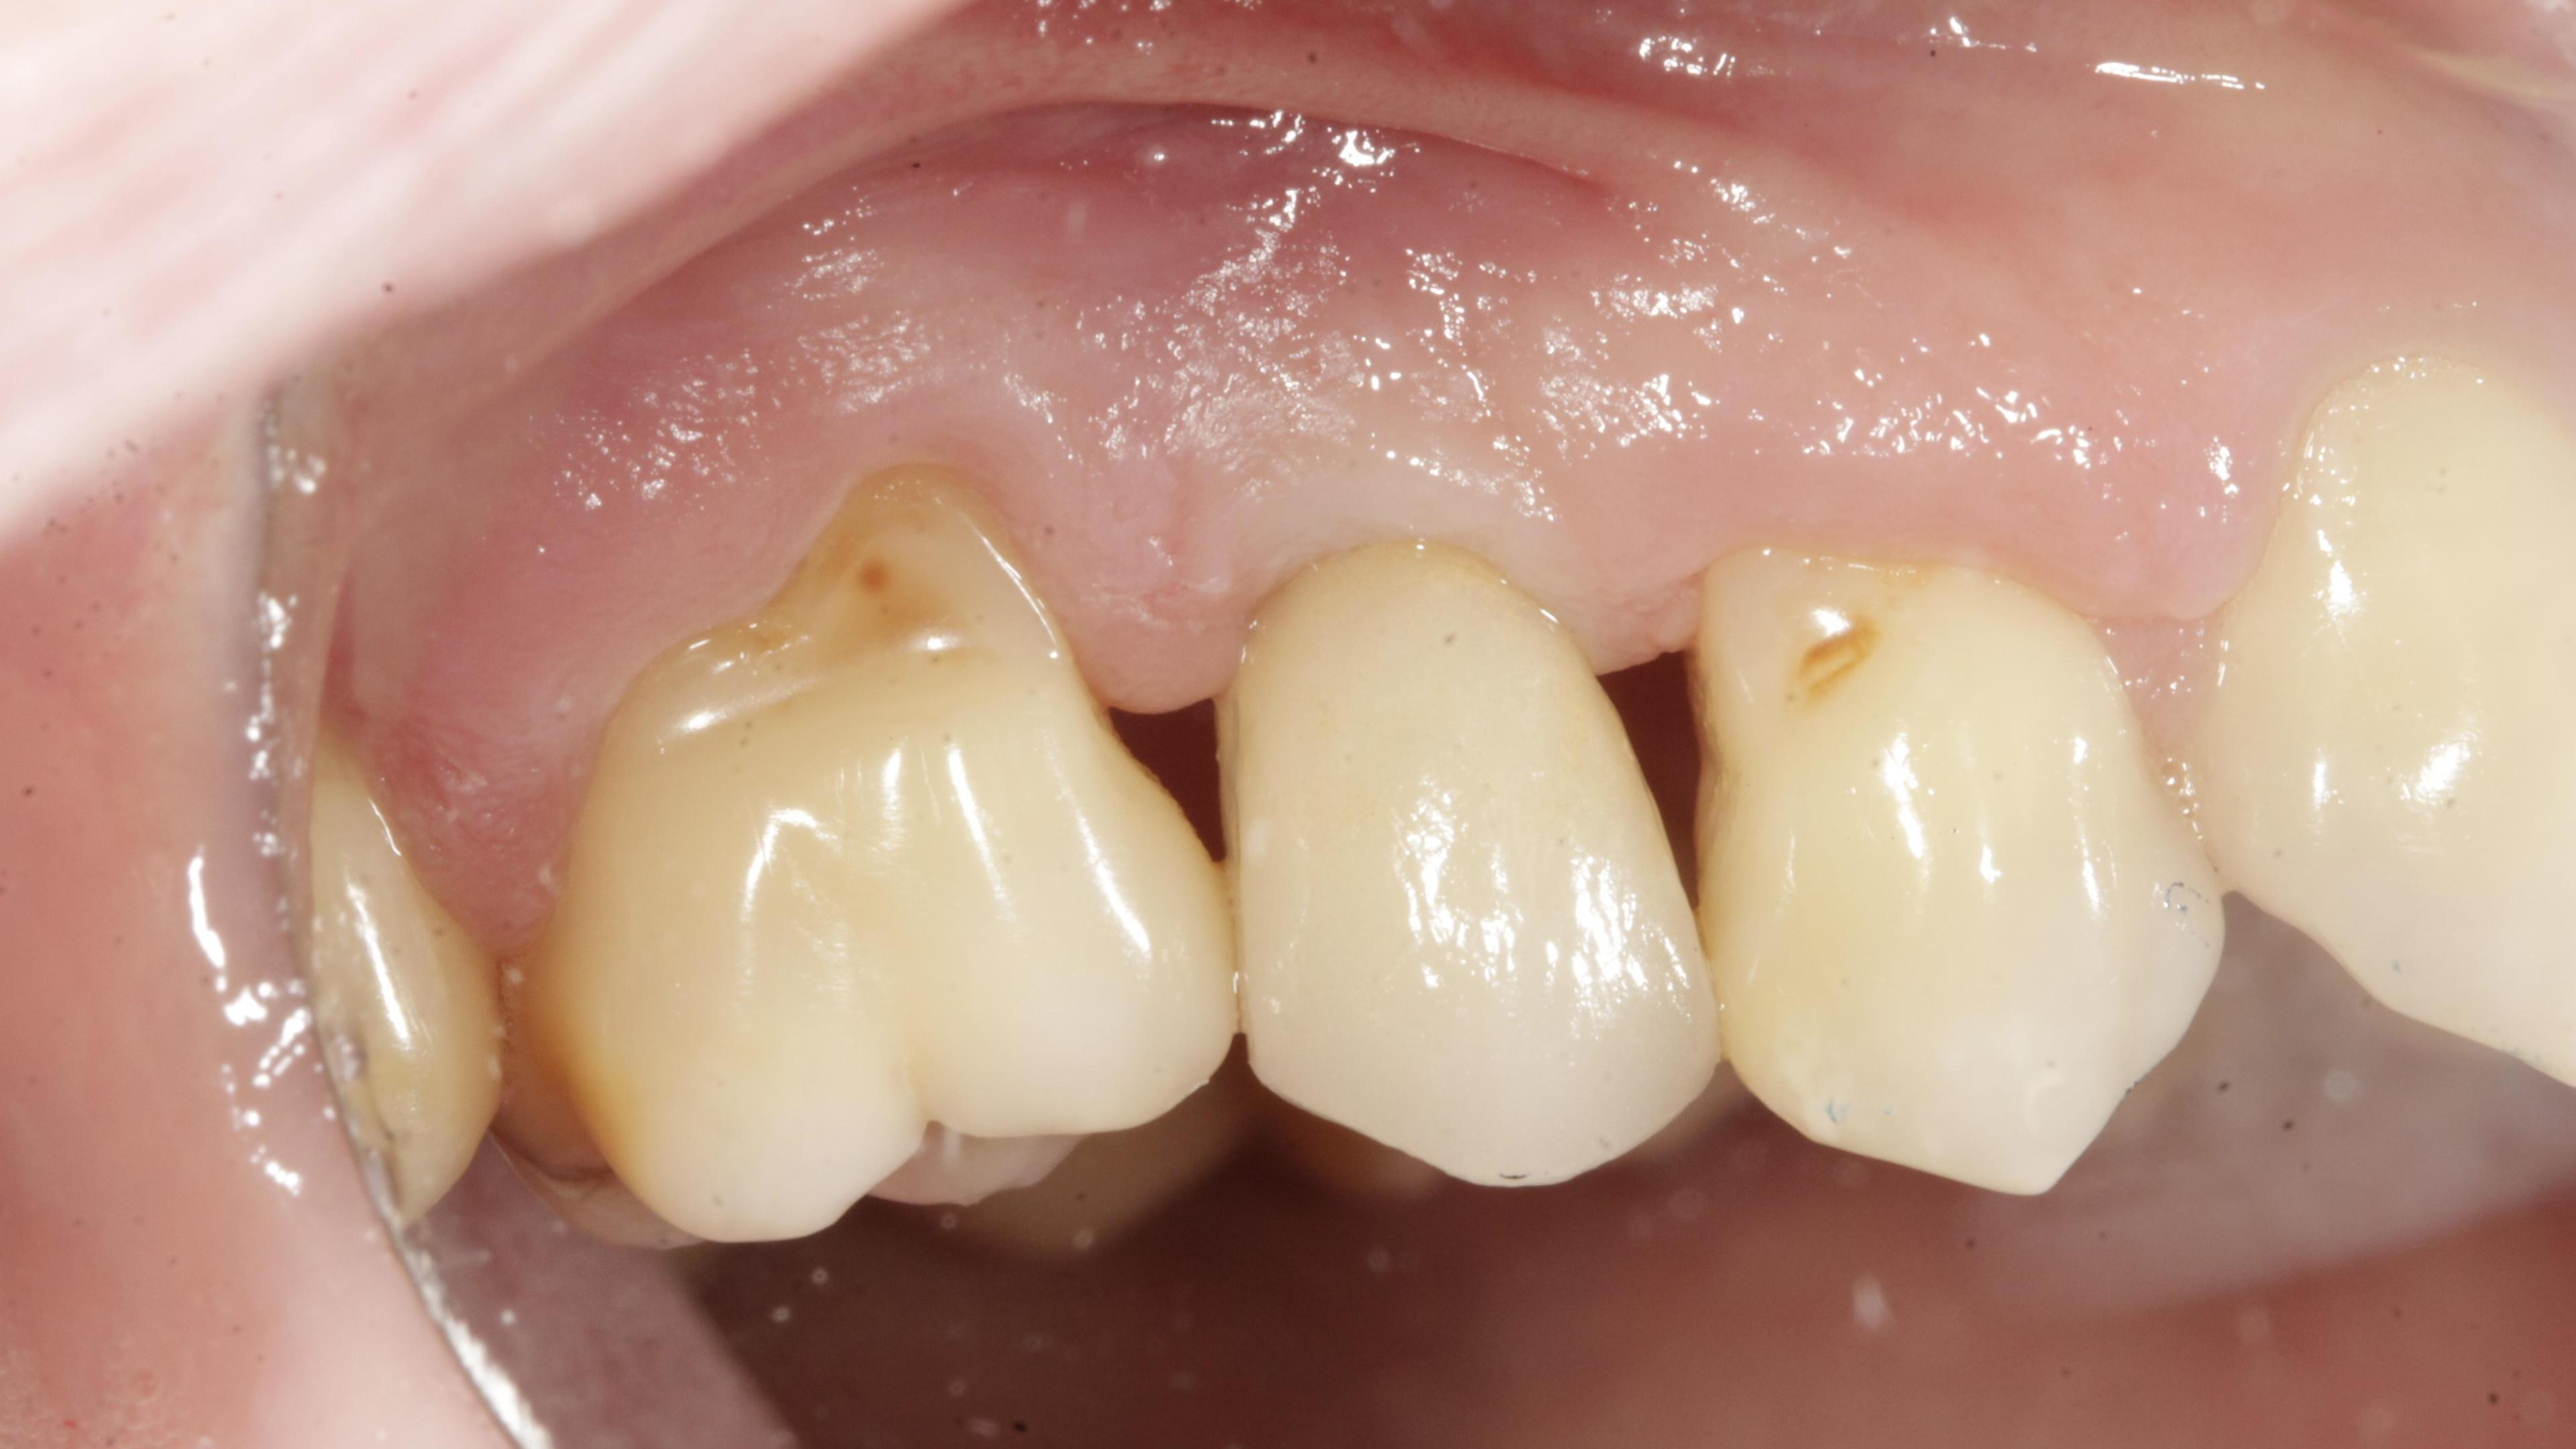 Single tooth loss After treatment - Single implant